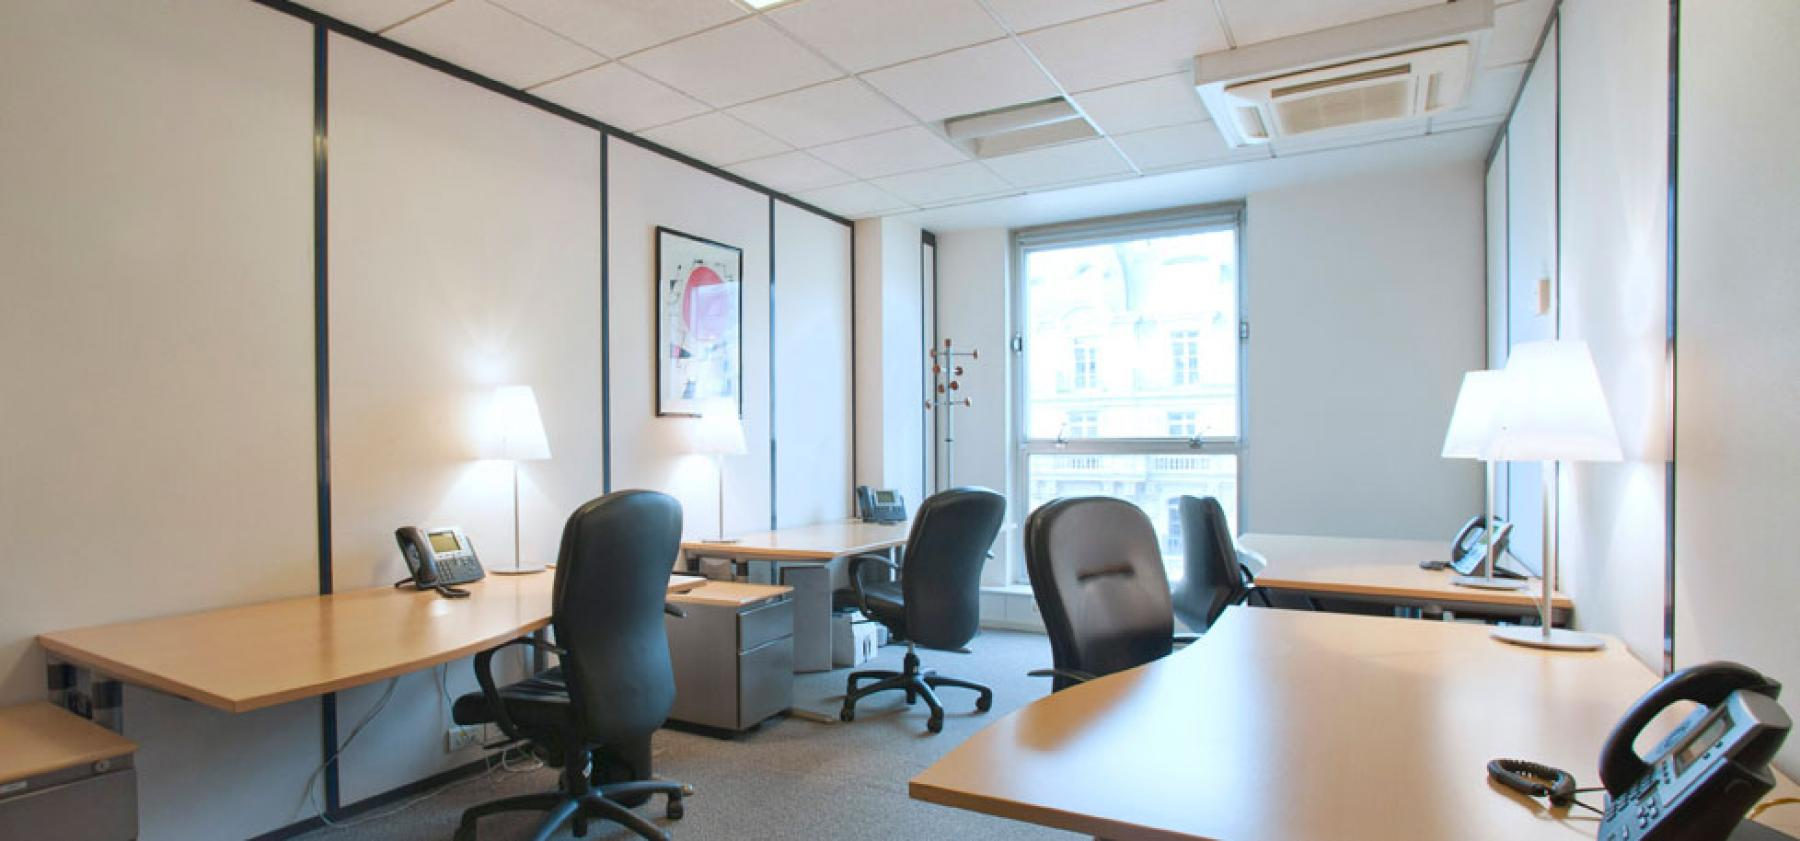 Location bureau Avenue Montaigne 42, Paris (2)